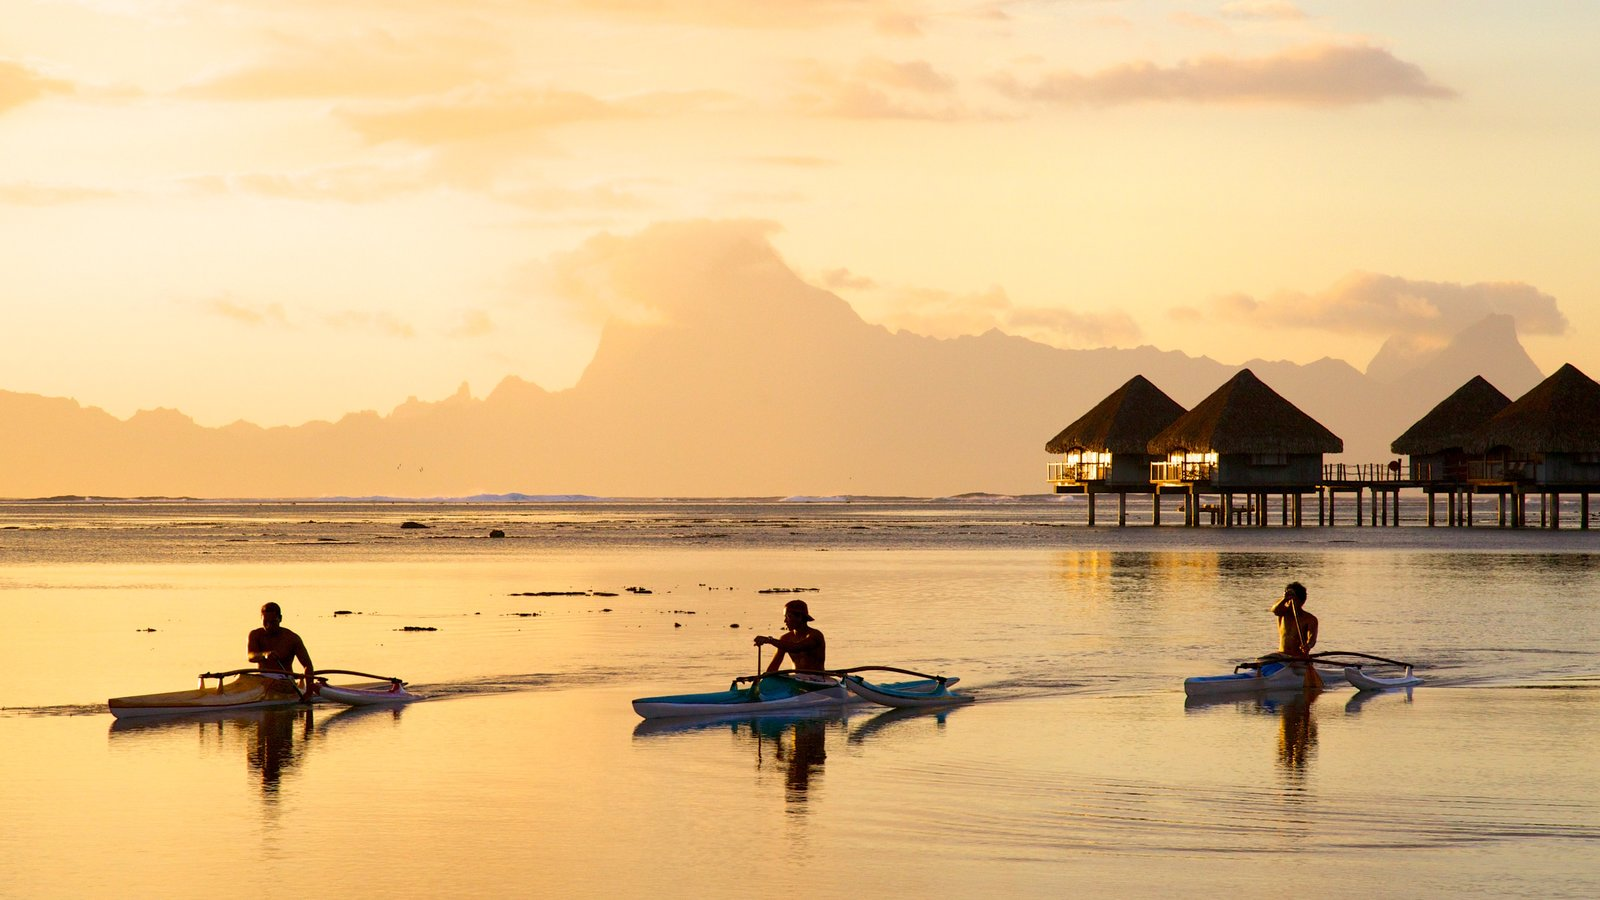 Tahiti featuring kayaking or canoeing, general coastal views and a sunset